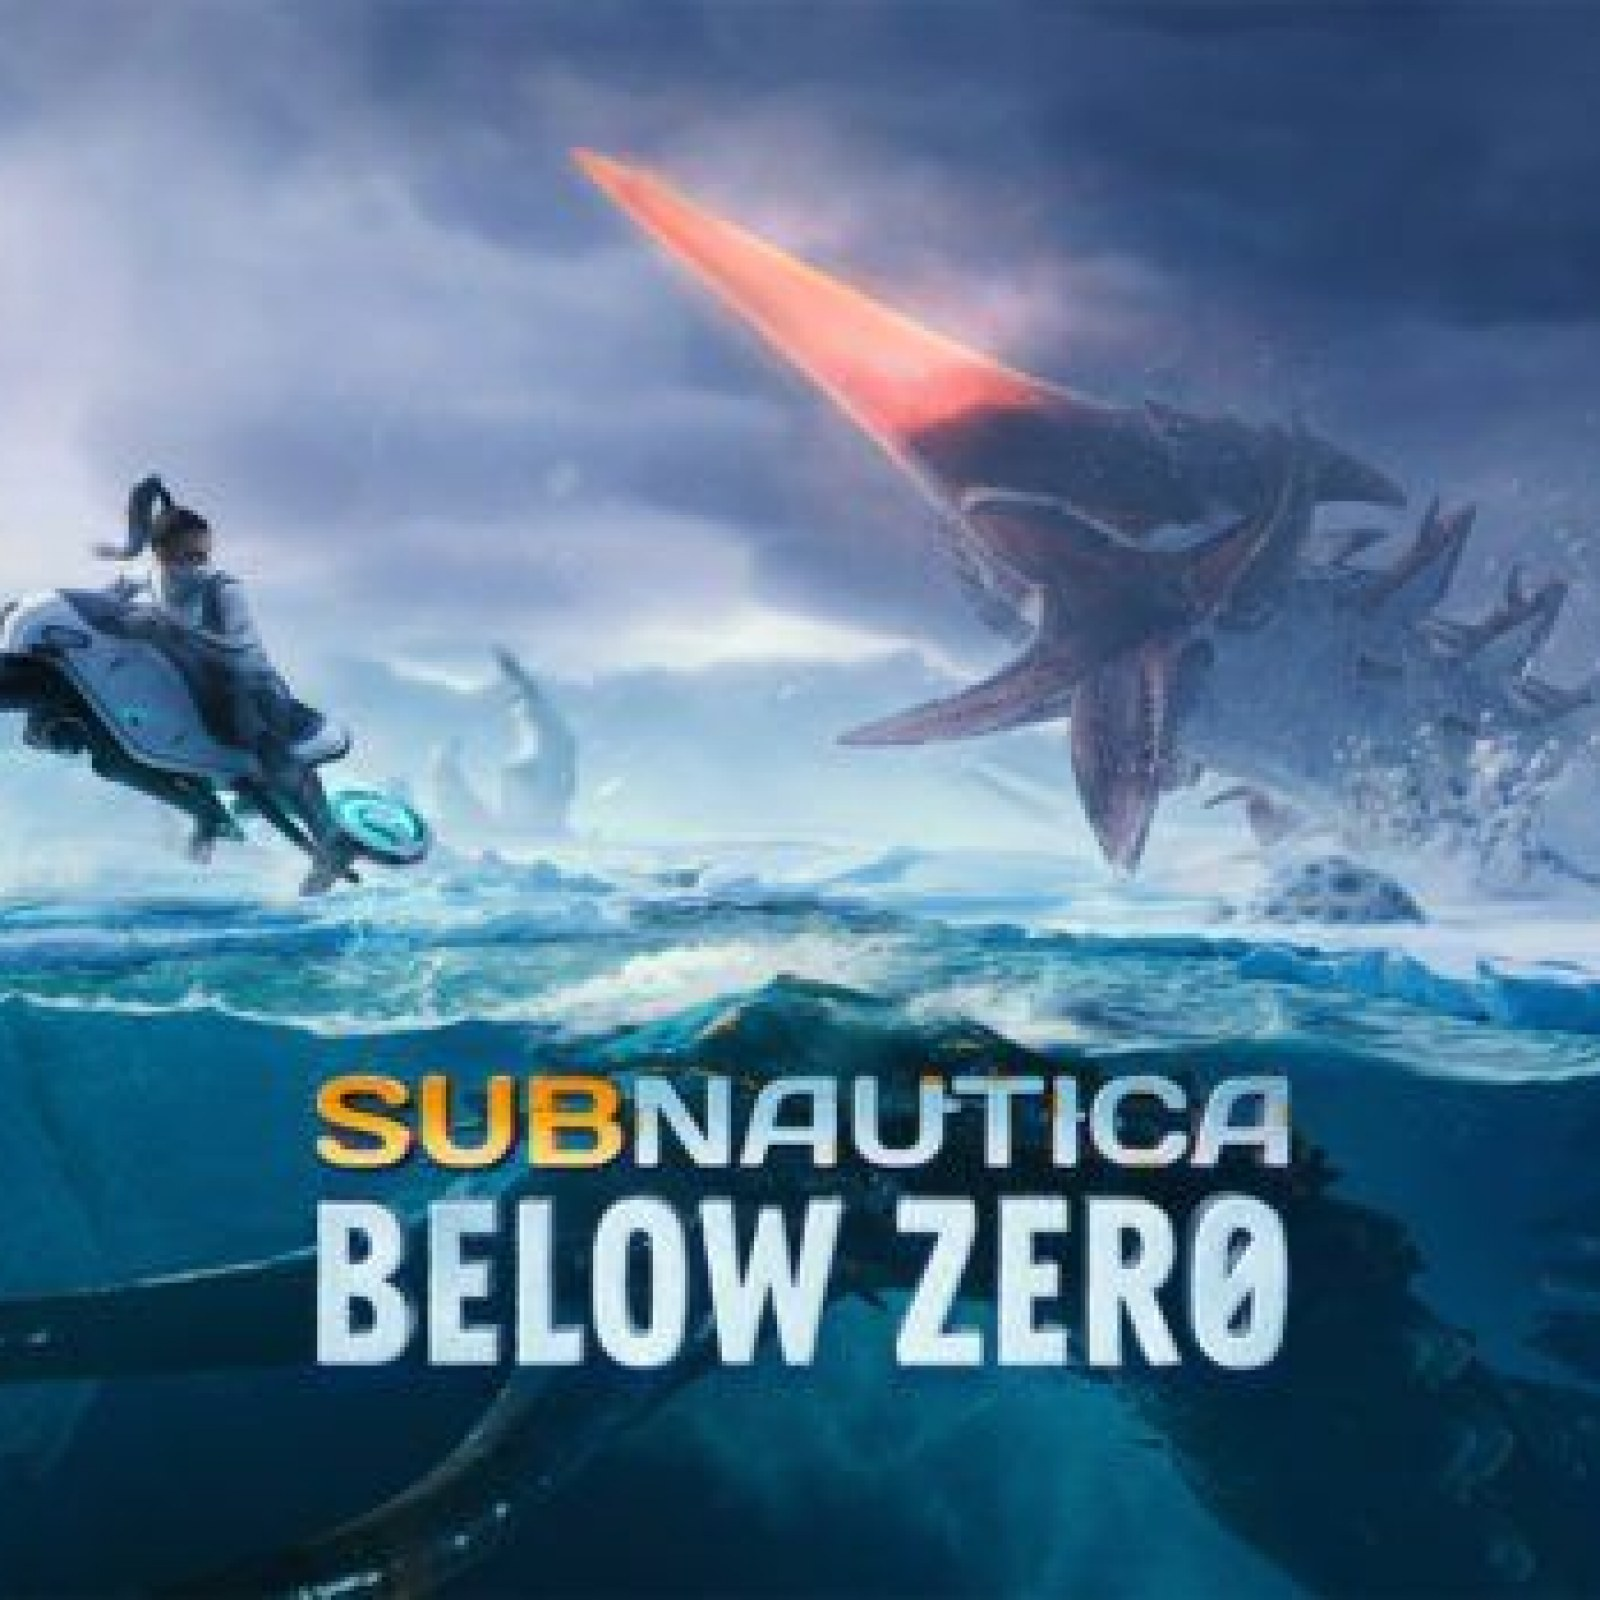 Subnautica: Below Zero' Cheats - Best Console Commands, Items List